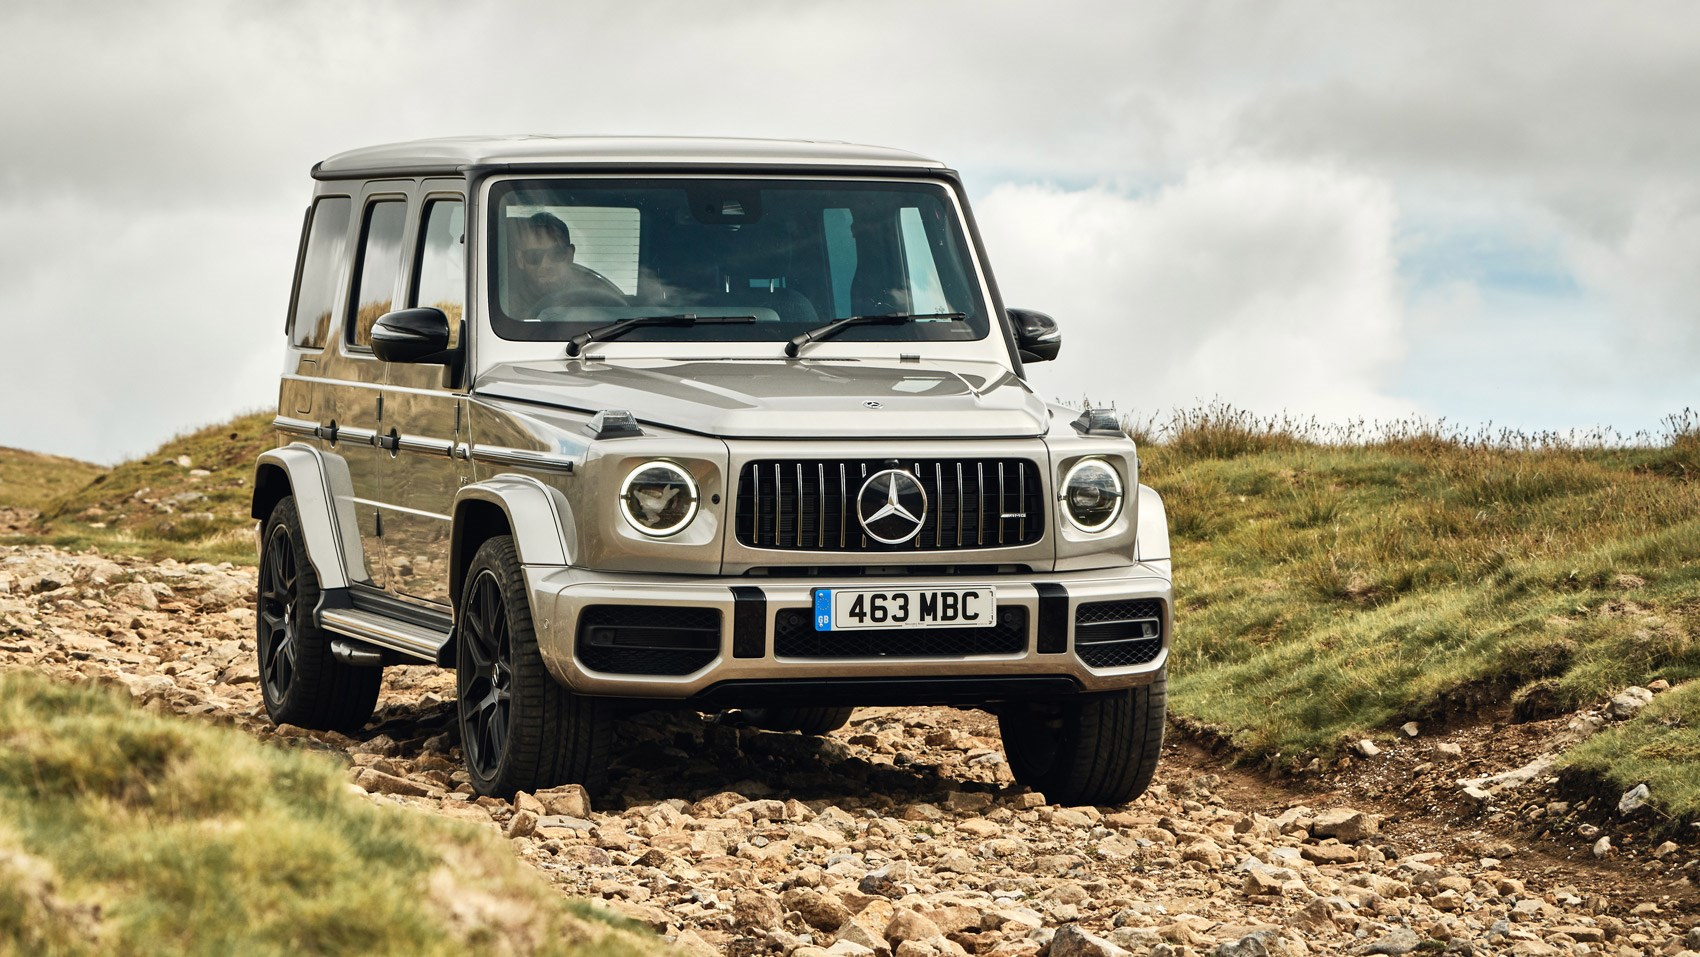 AMG G63 front offroad